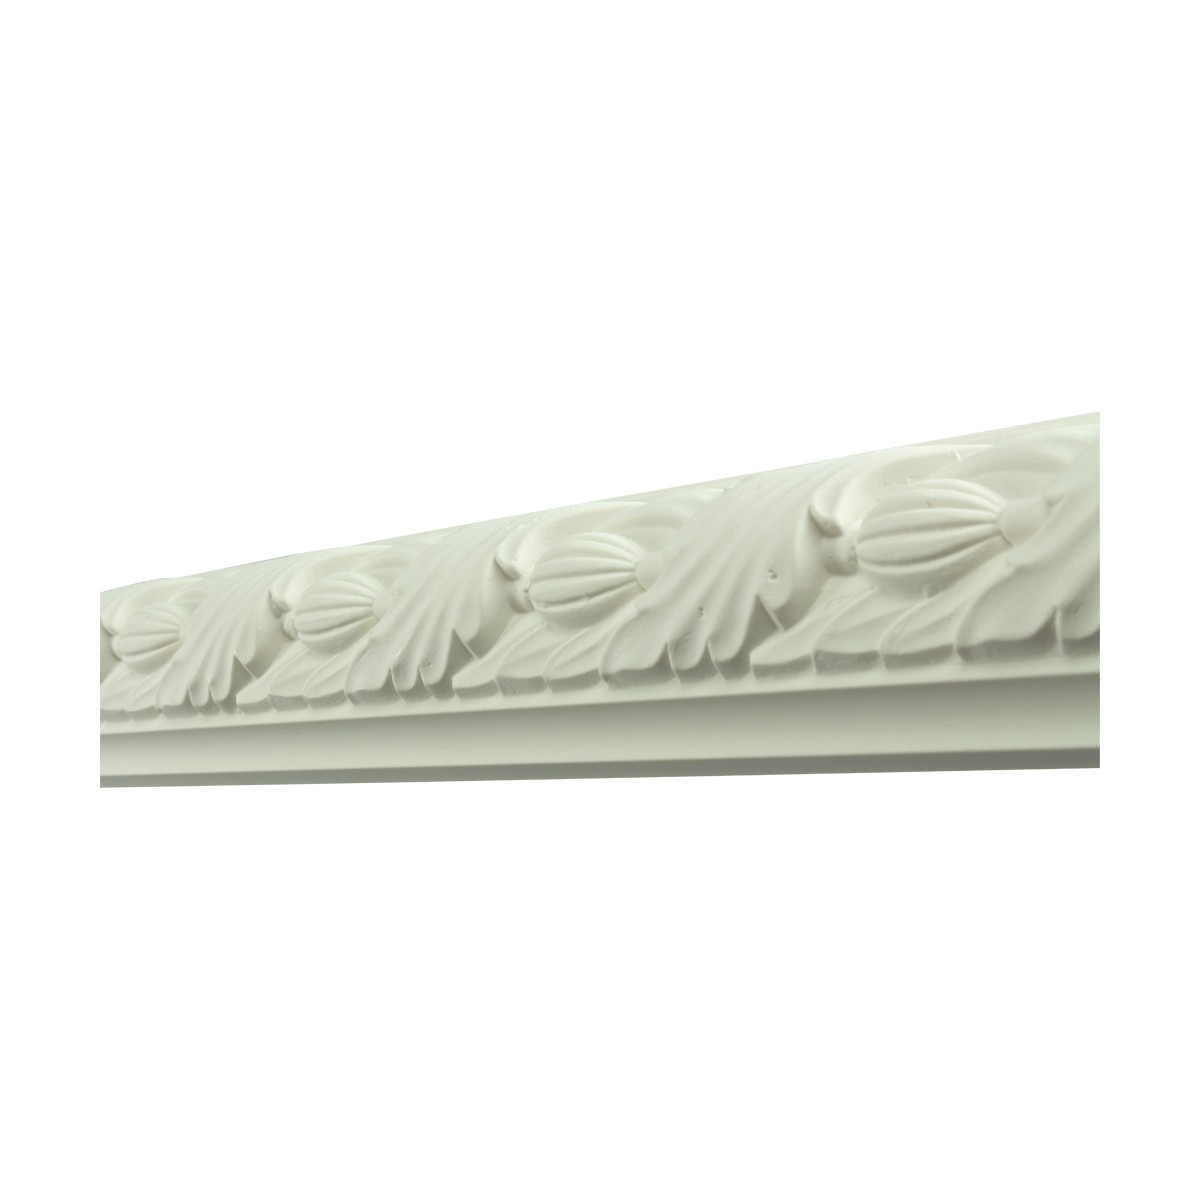 Renovators Supply Crown Molding White Urethane Tennyson Ornate  12 Pieces Totaling 1128 Length White PrePrimed Urethane Crown Cornice Molding Cornice Crown Home Depot Ekena Millwork Molding Wall Ceiling Corner Cornice Crown Cove Molding